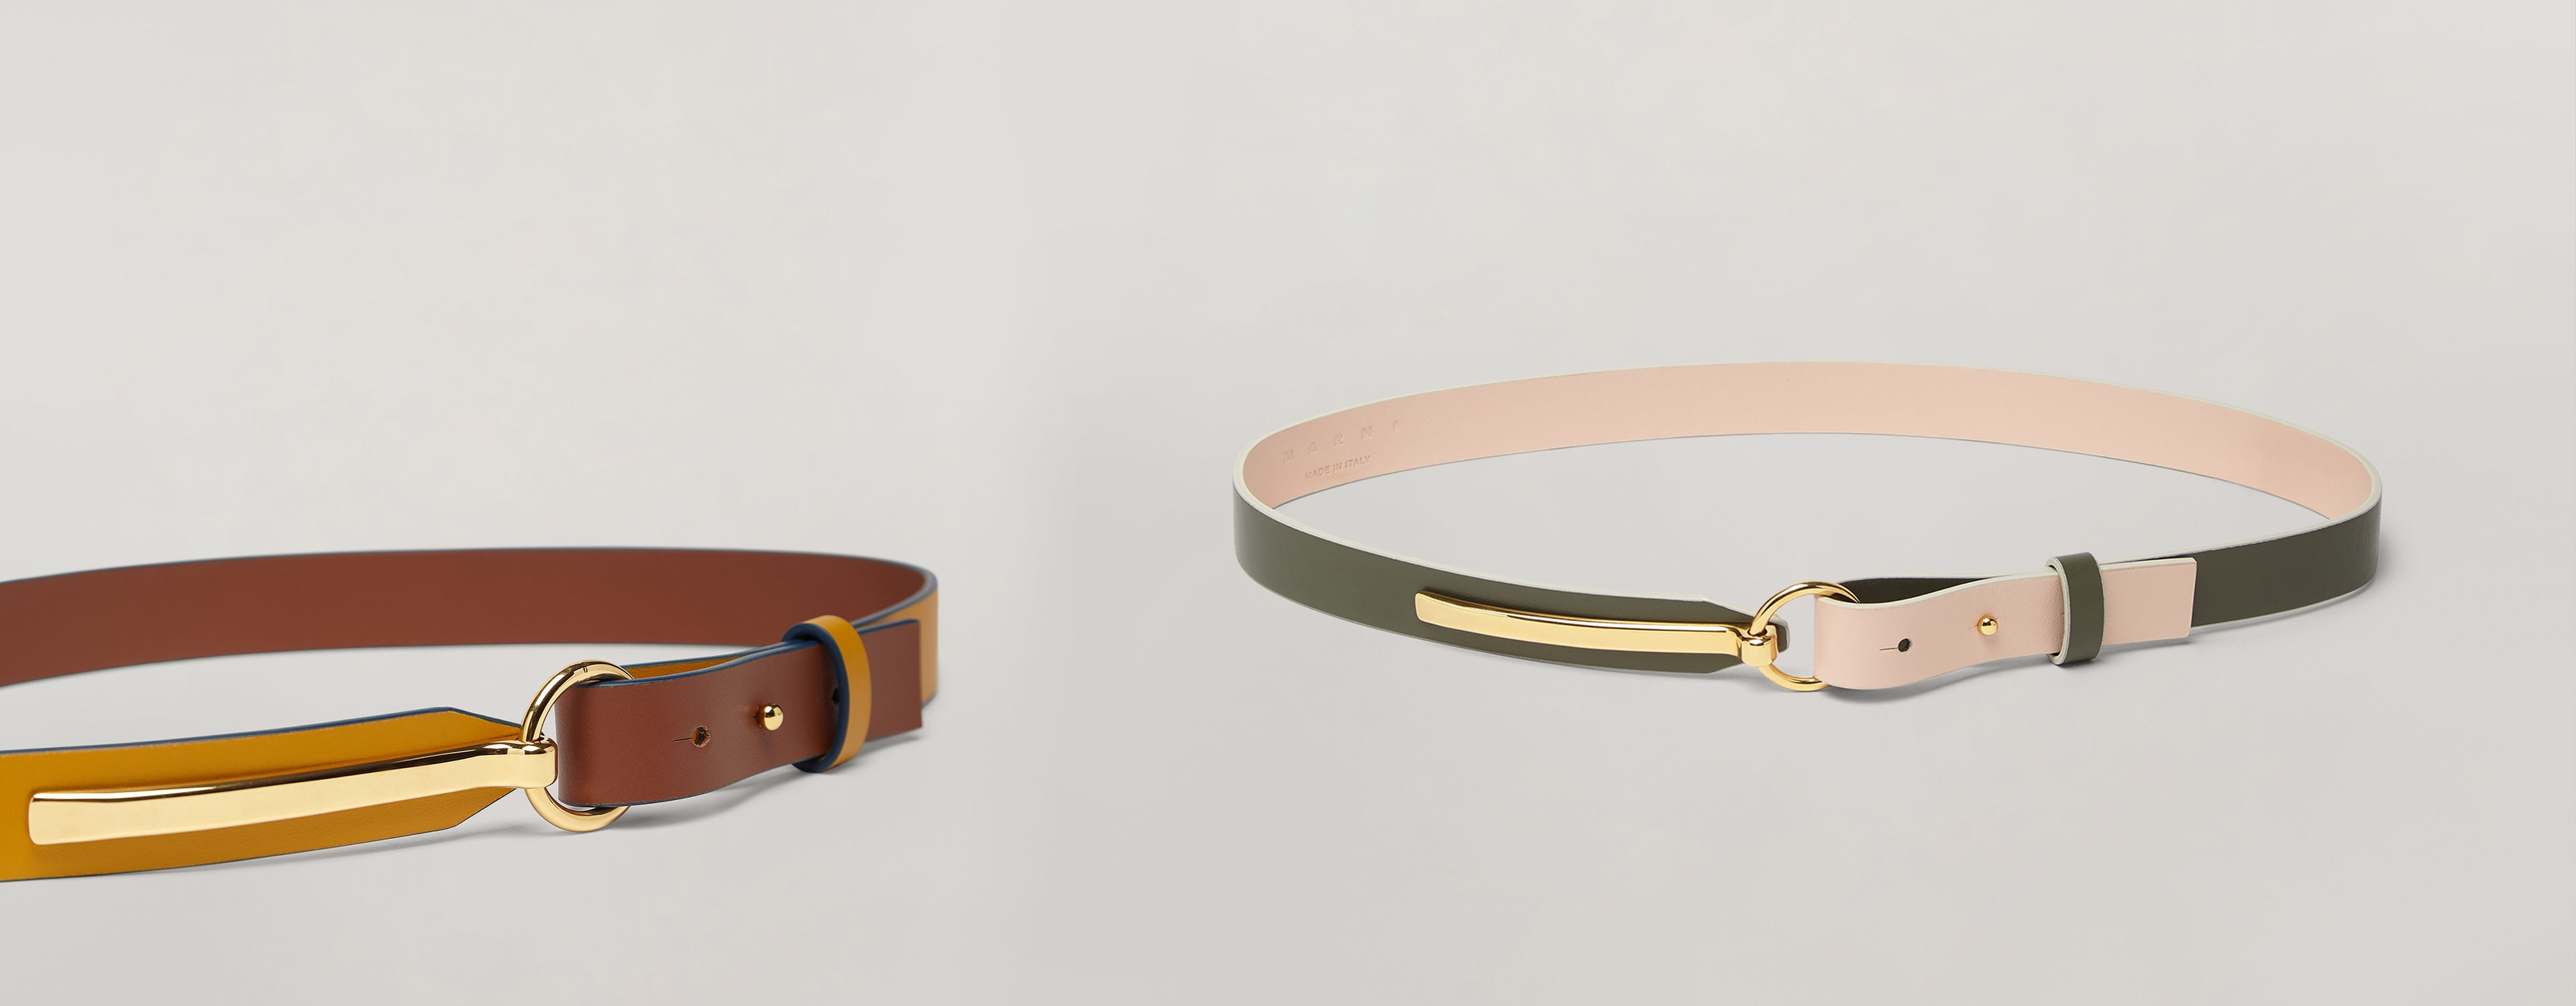 Two belts, one in green and pink, and one in brown and gold from the Resort 2020 collection